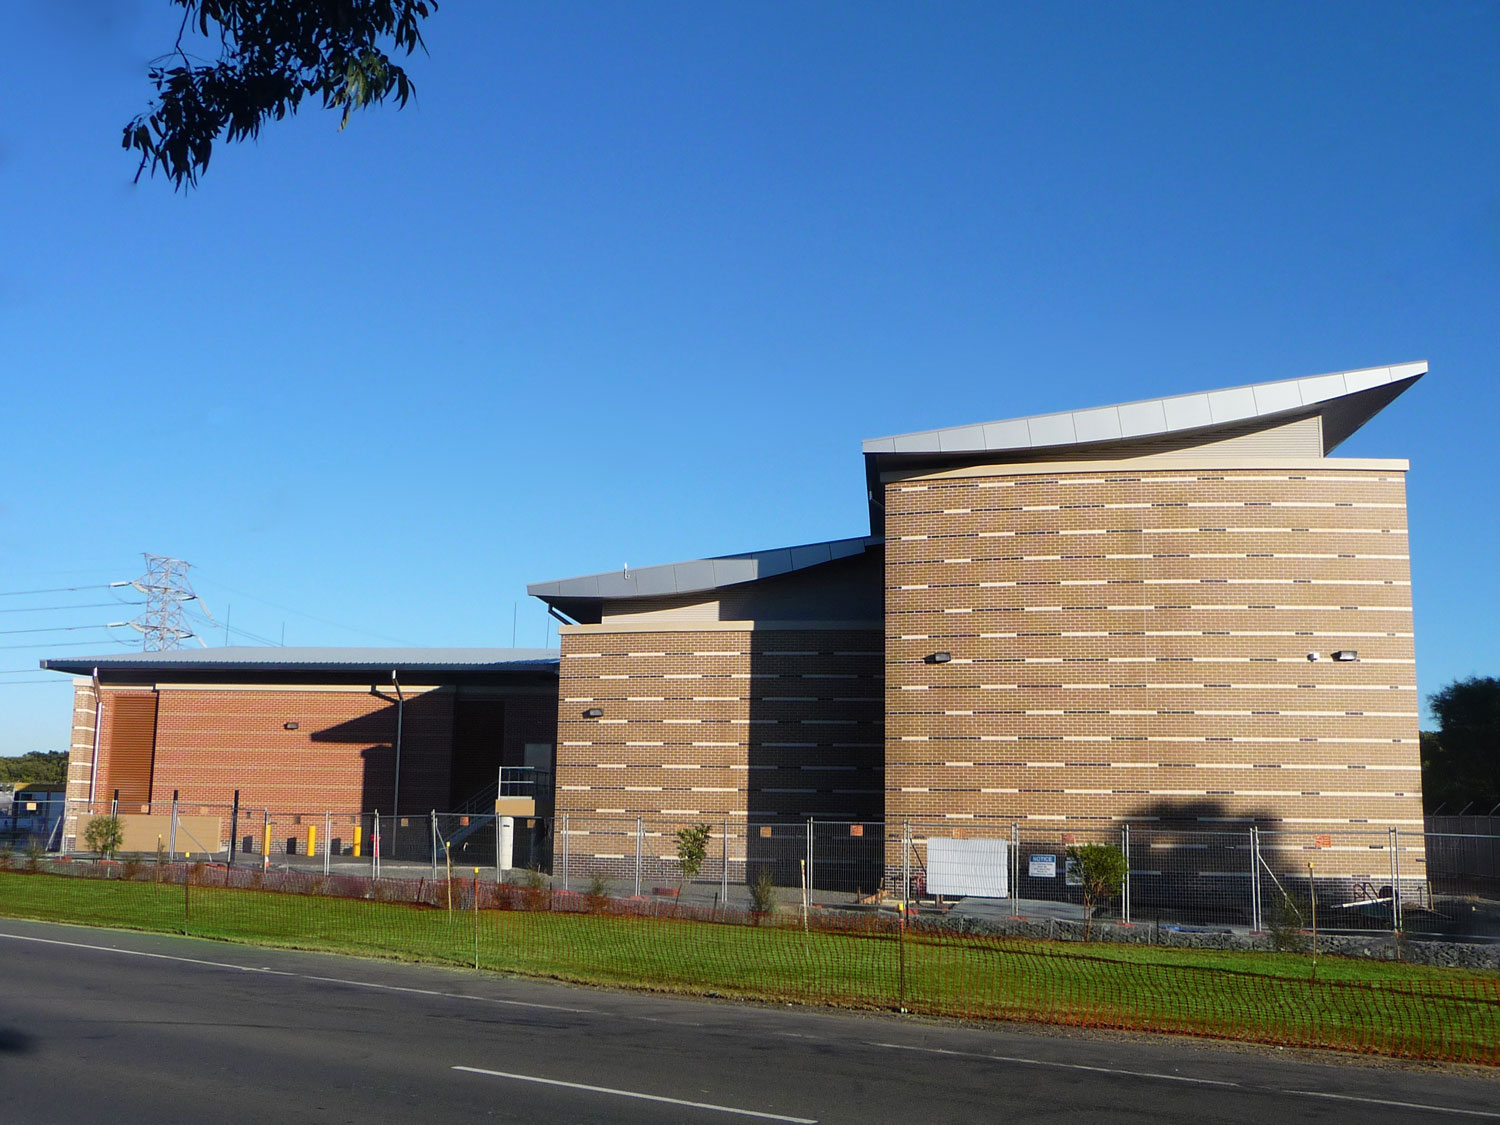 KURNELL ZONE SUBSTATION